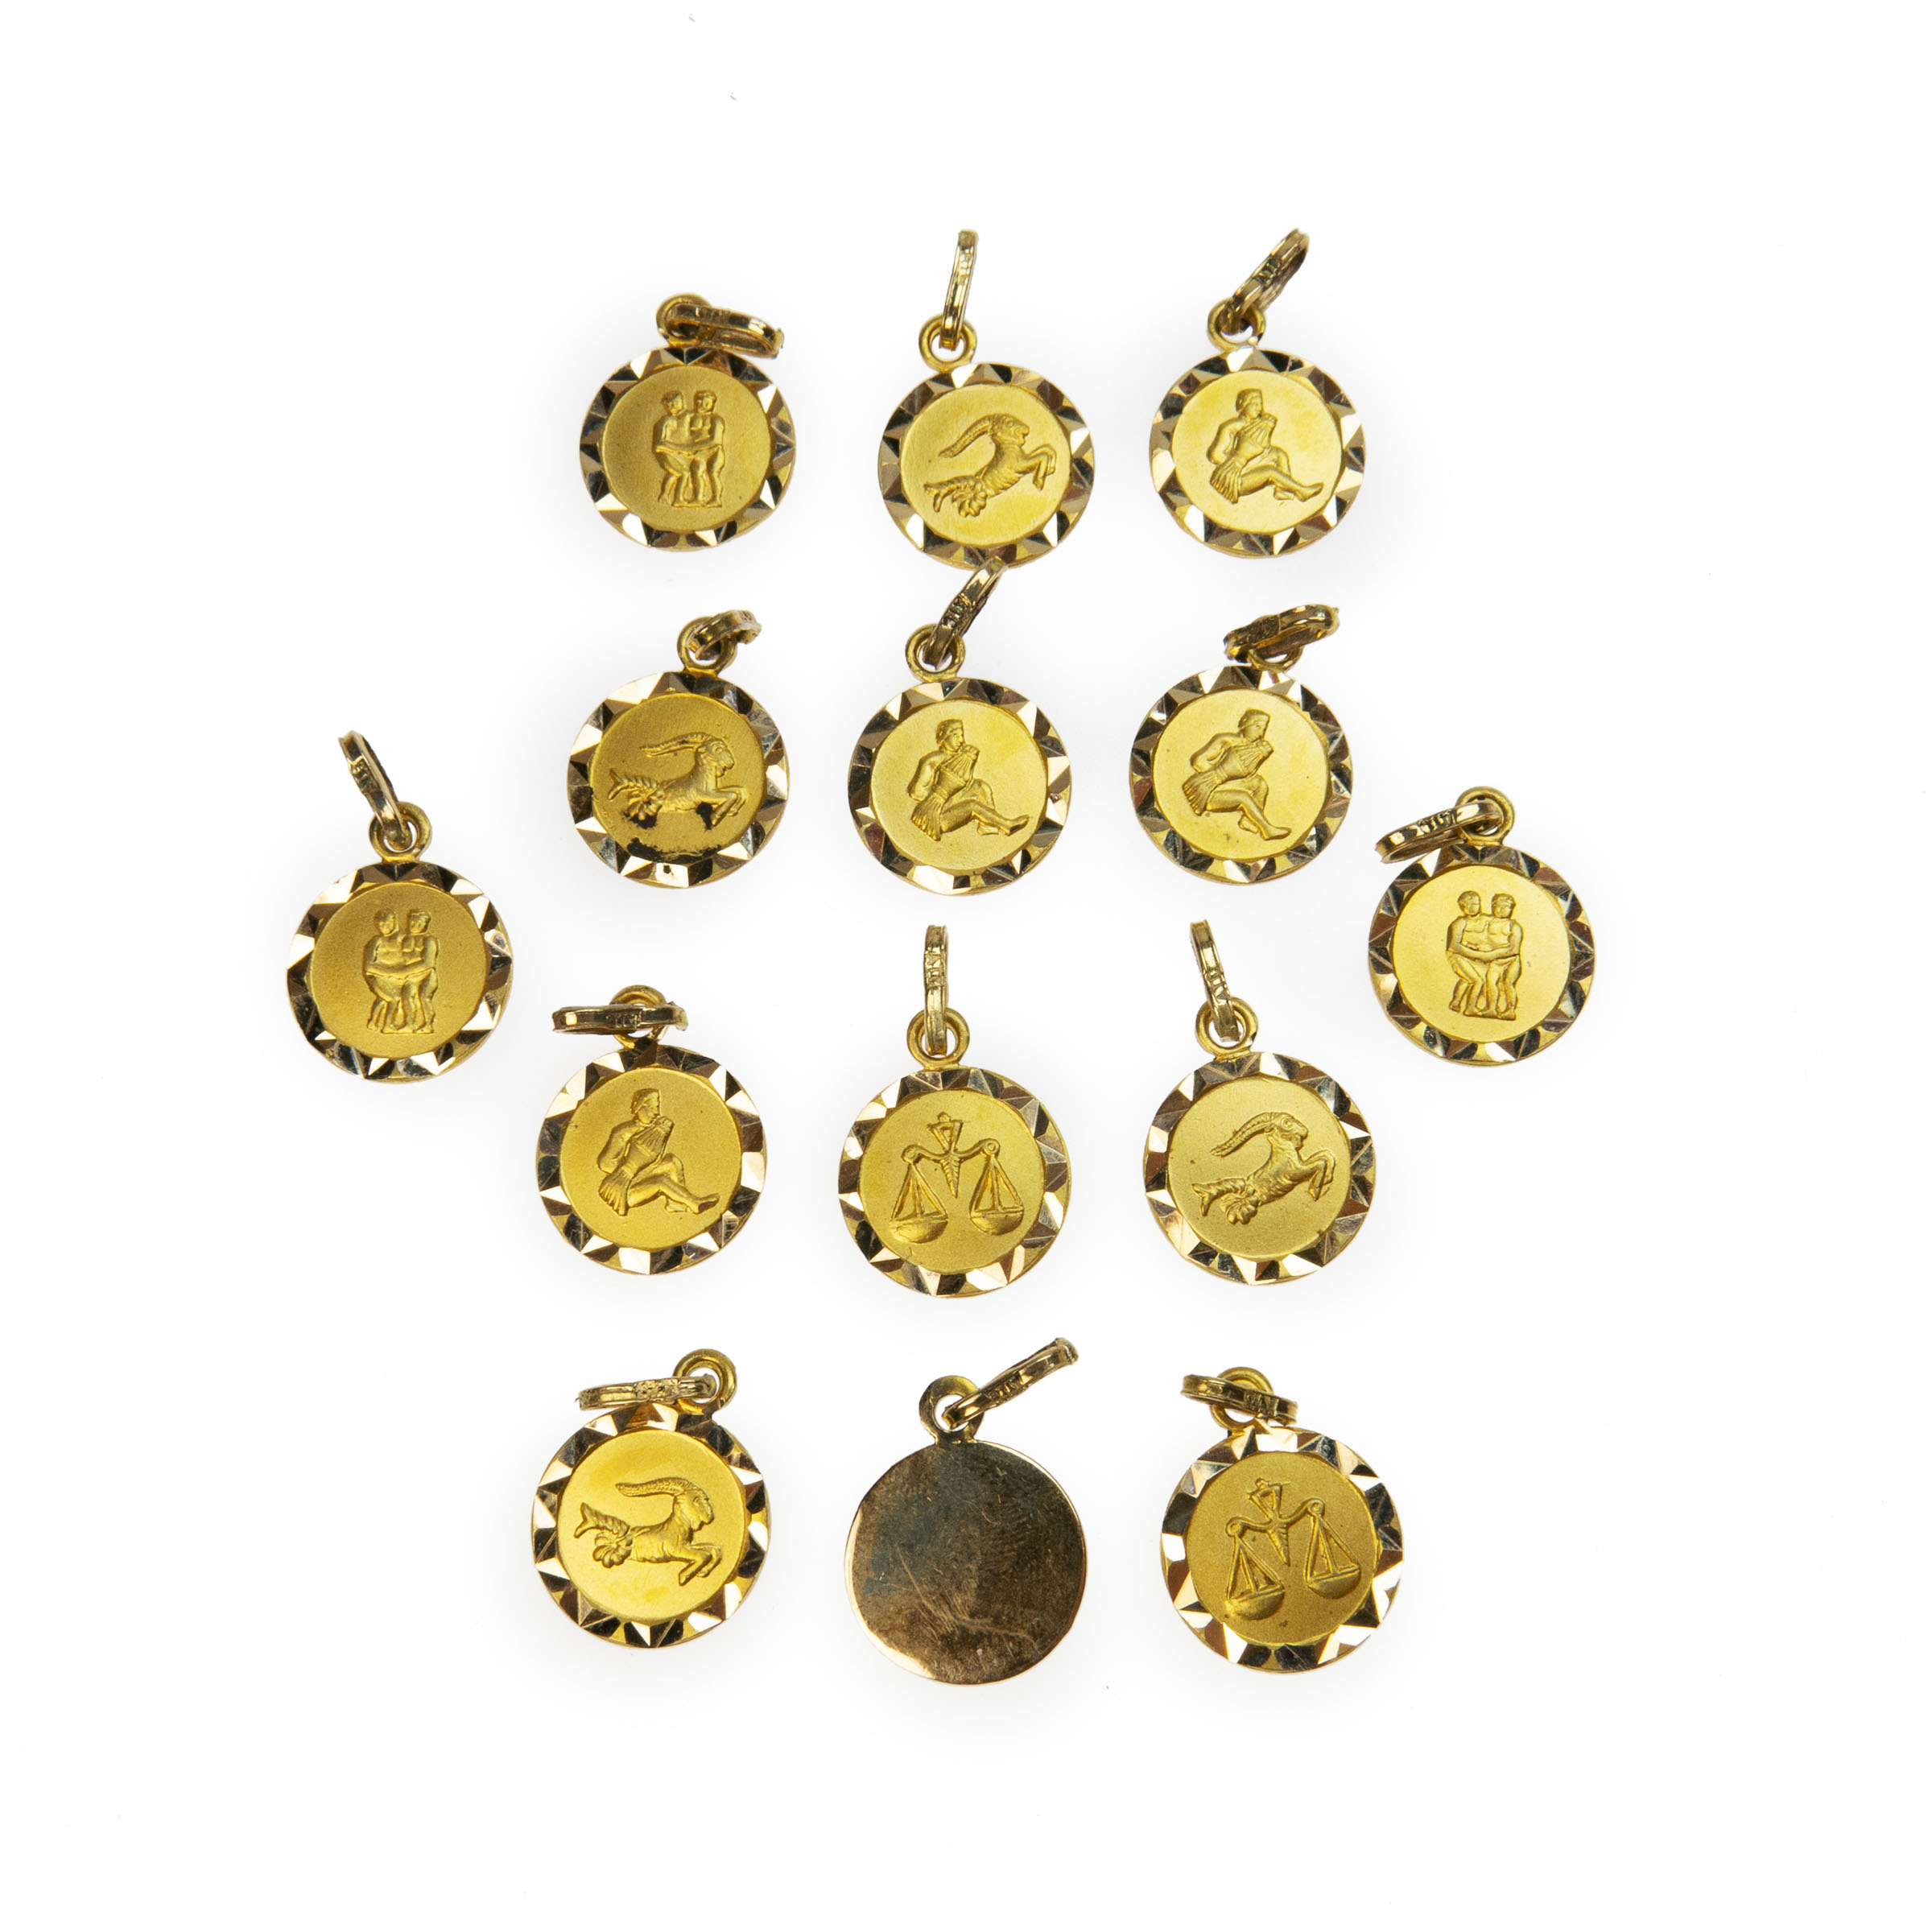 14 X 18K Yellow Gold Charms